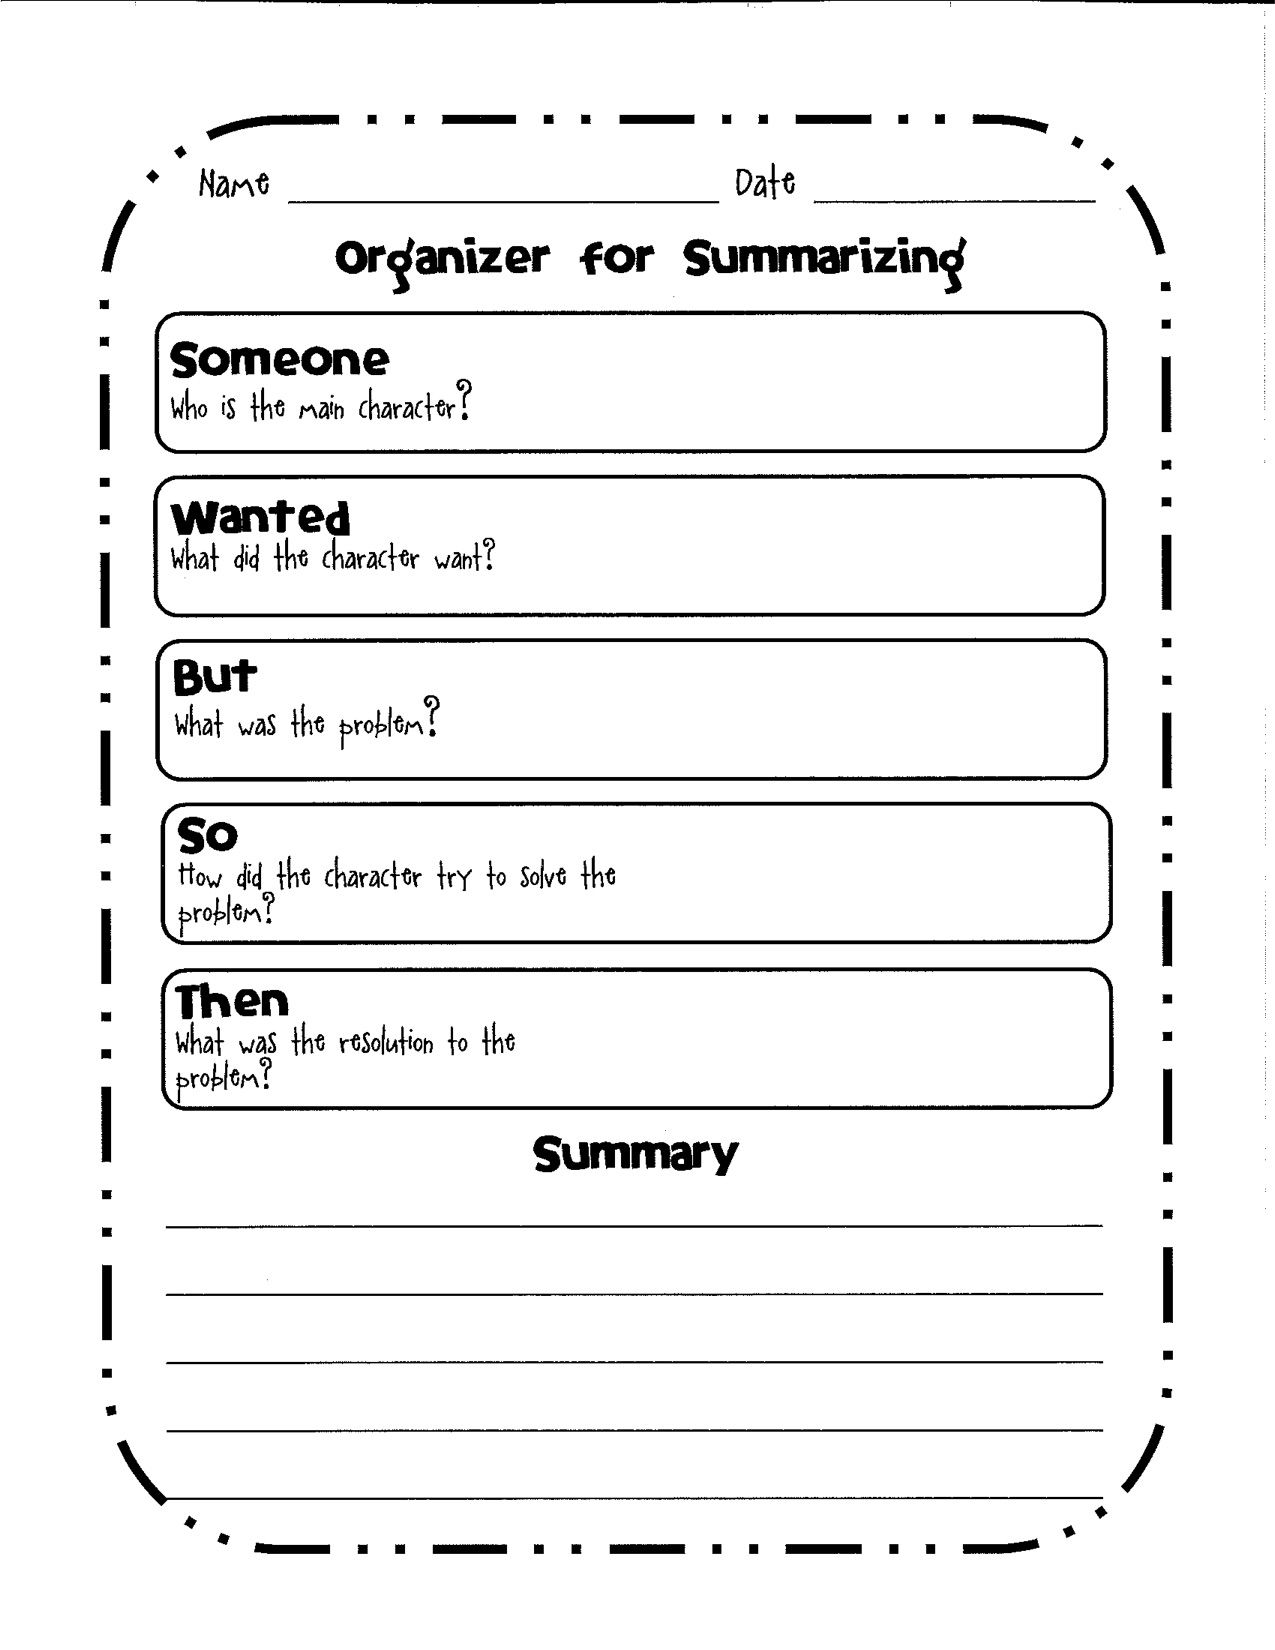 Organizer For Summarizing A Graphic Organizer To Help Students Organize Their Thoughts While Organiz Summary Writing Summarizing Worksheet Elementary Writing